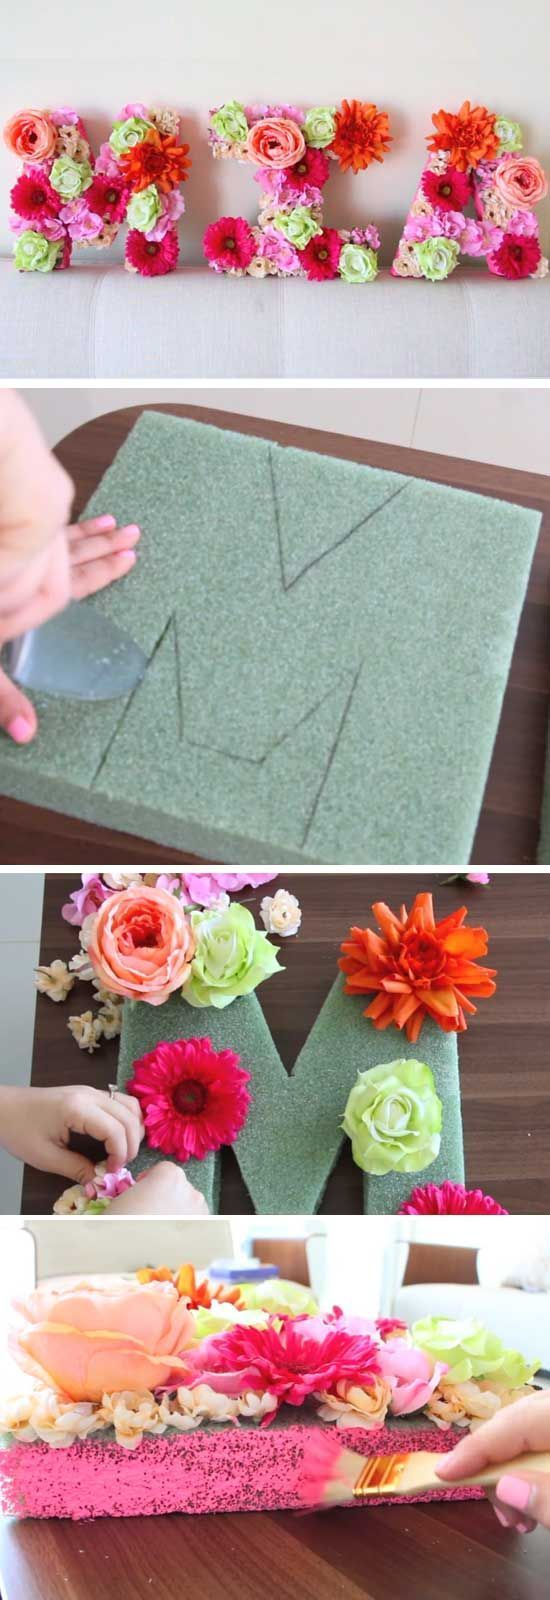 DIY Birthday Decoration Ideas to Delight the Guest of Honor